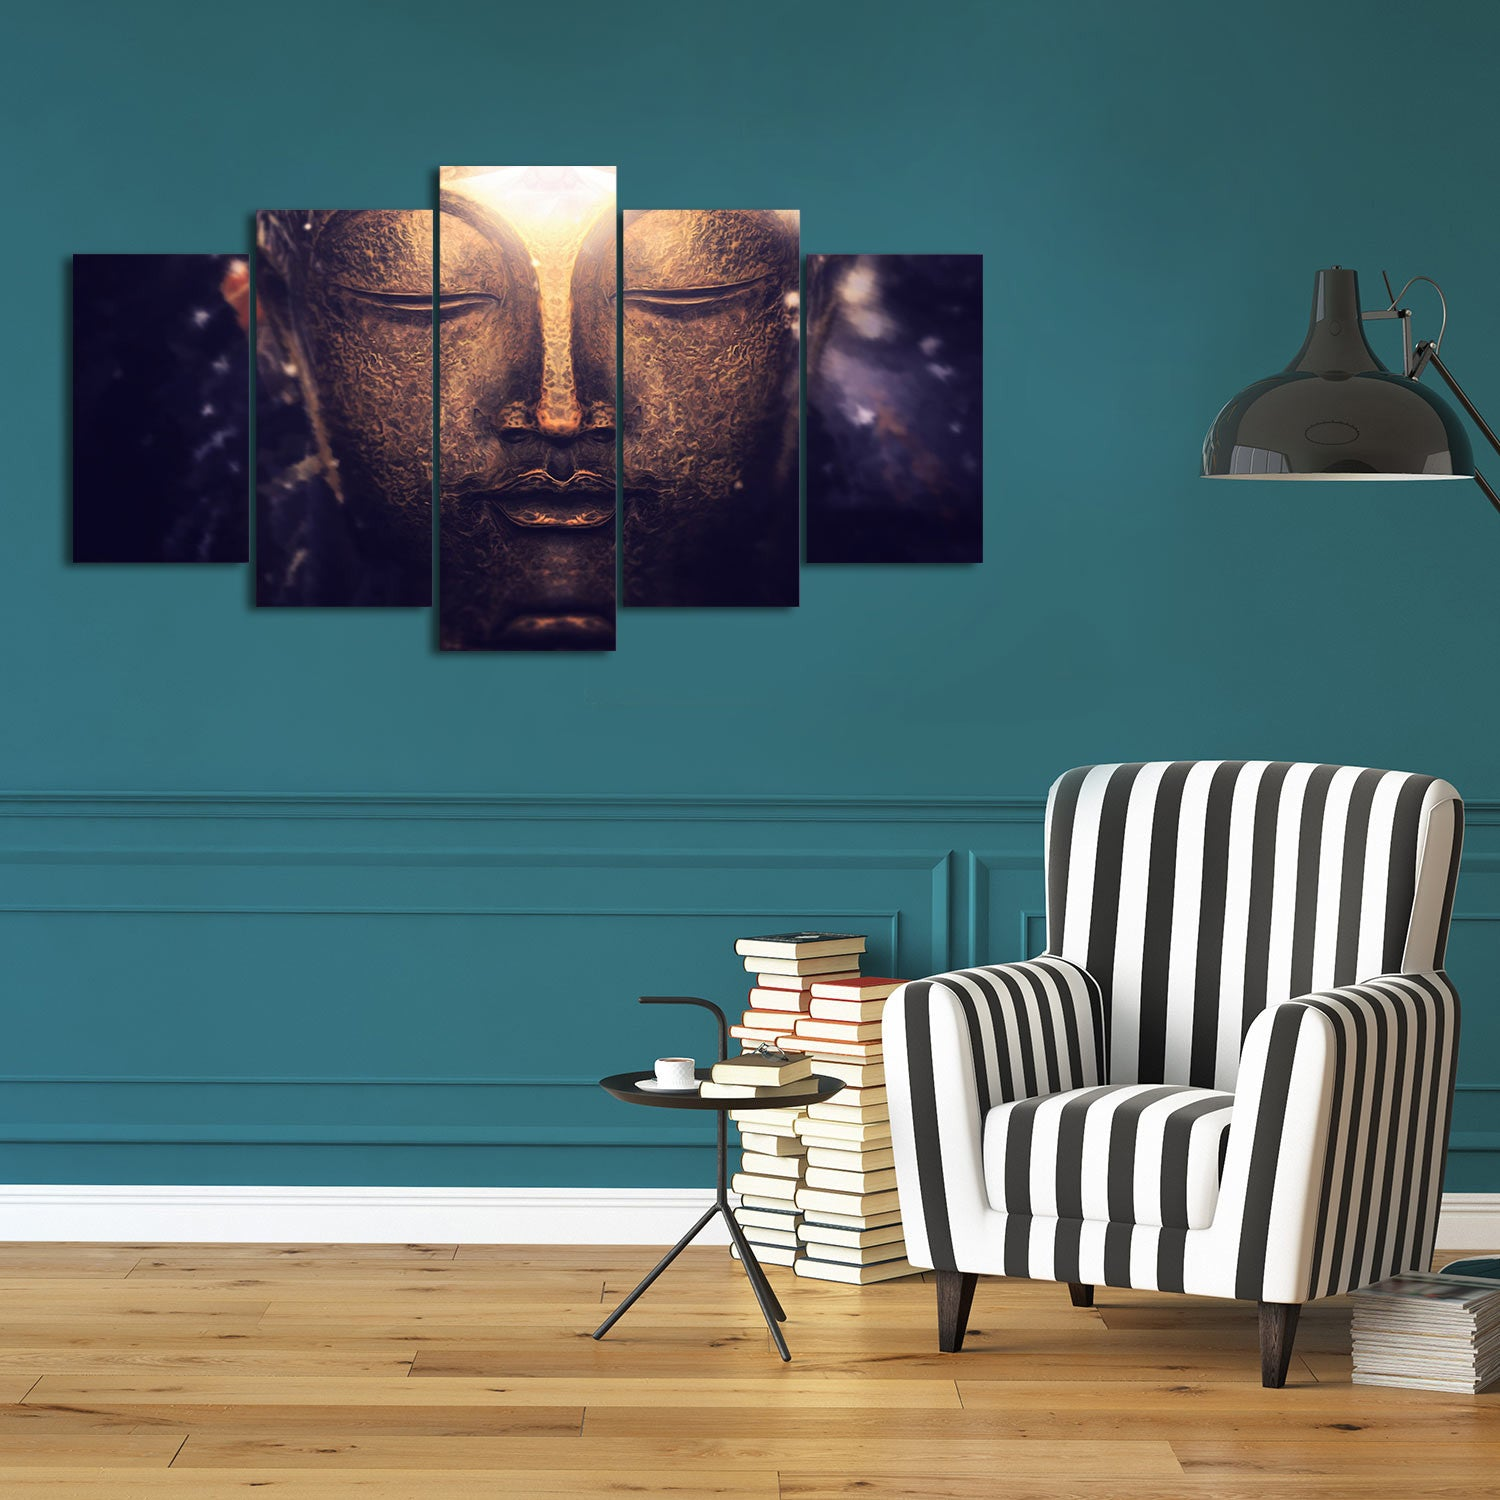 Buddha Enlighten 5 Piece Canvas